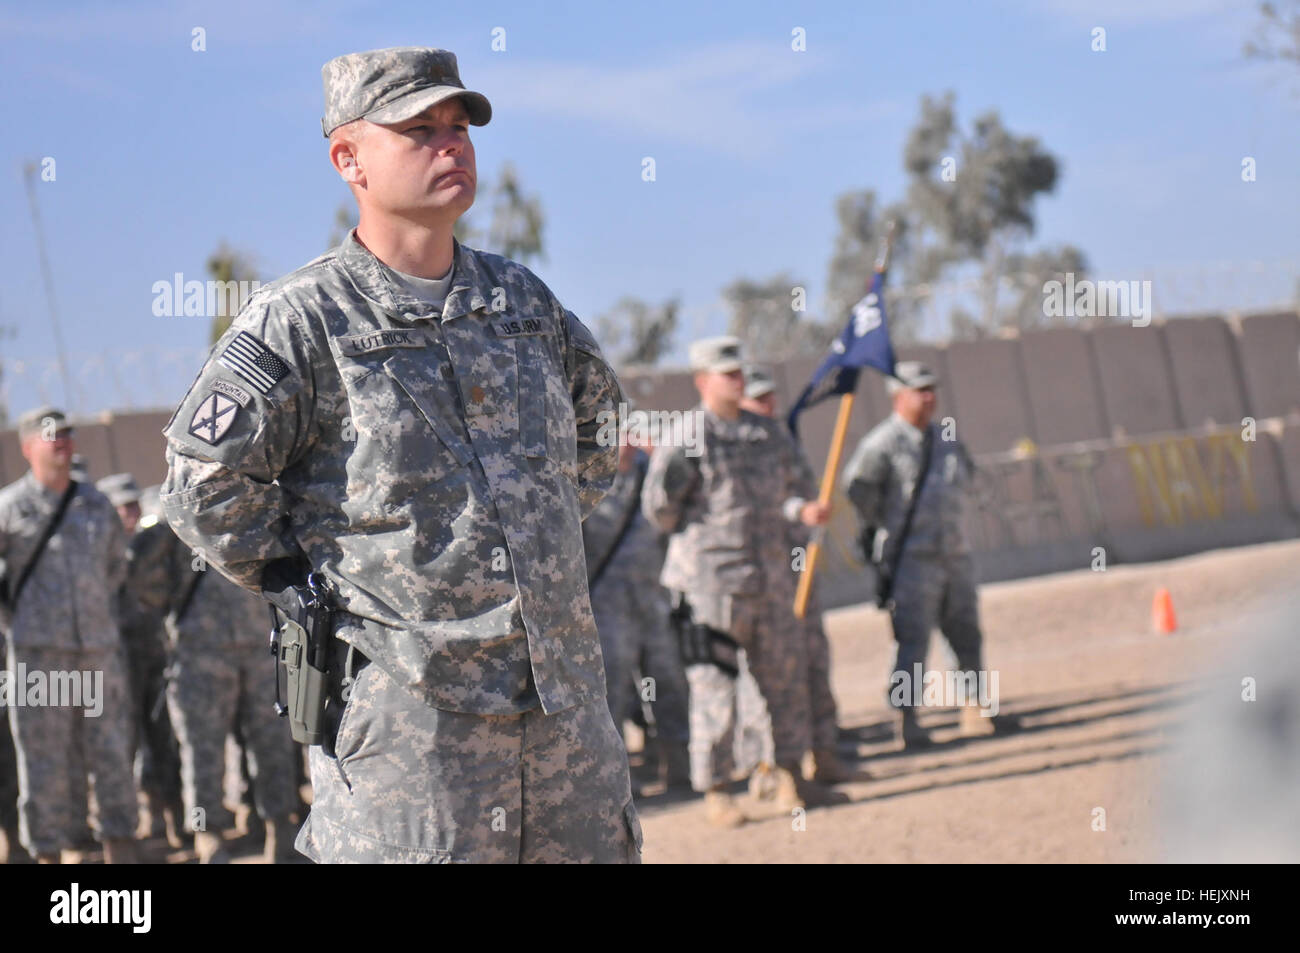 United Army Officer In Front Stockfotos & United Army Officer In ...